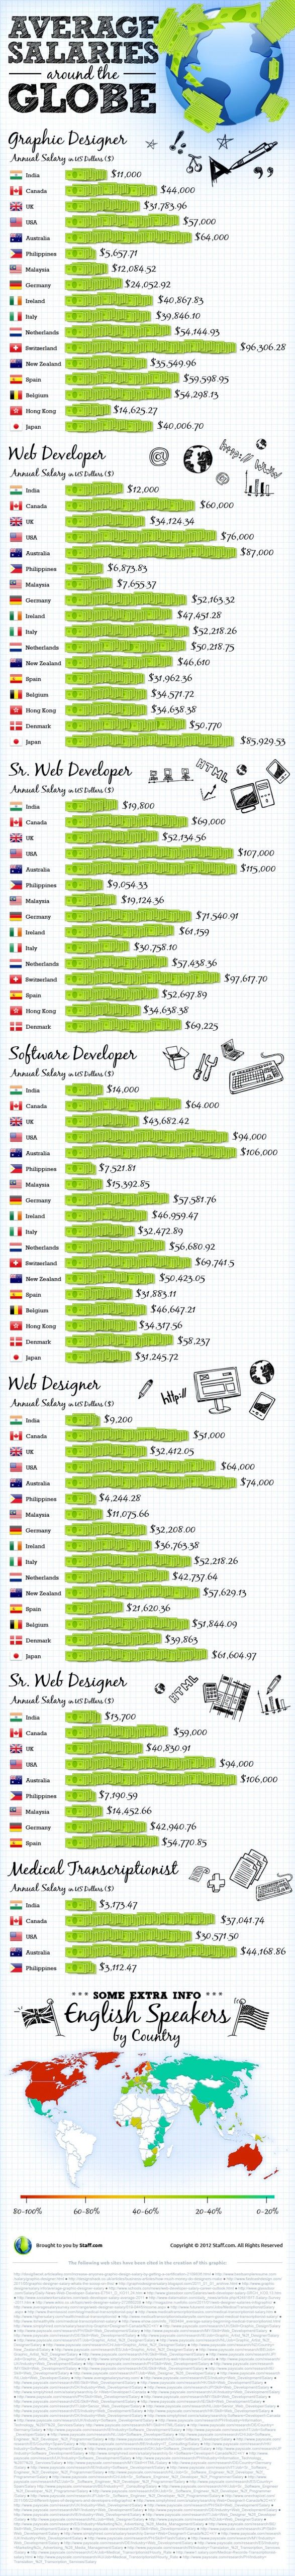 Salaries of web developers in India, the P...     ► ► ►#Tags  For This Pin   ► ► ►#startups #bestwebsites #business #electroknol #creative  #ideas #technology #bestofPinterest #repin #India #smallbiz #smallbusinesses #Awesome #coolestpin #bestpin #repinme  #Innovative #infographics  #india #developer #job